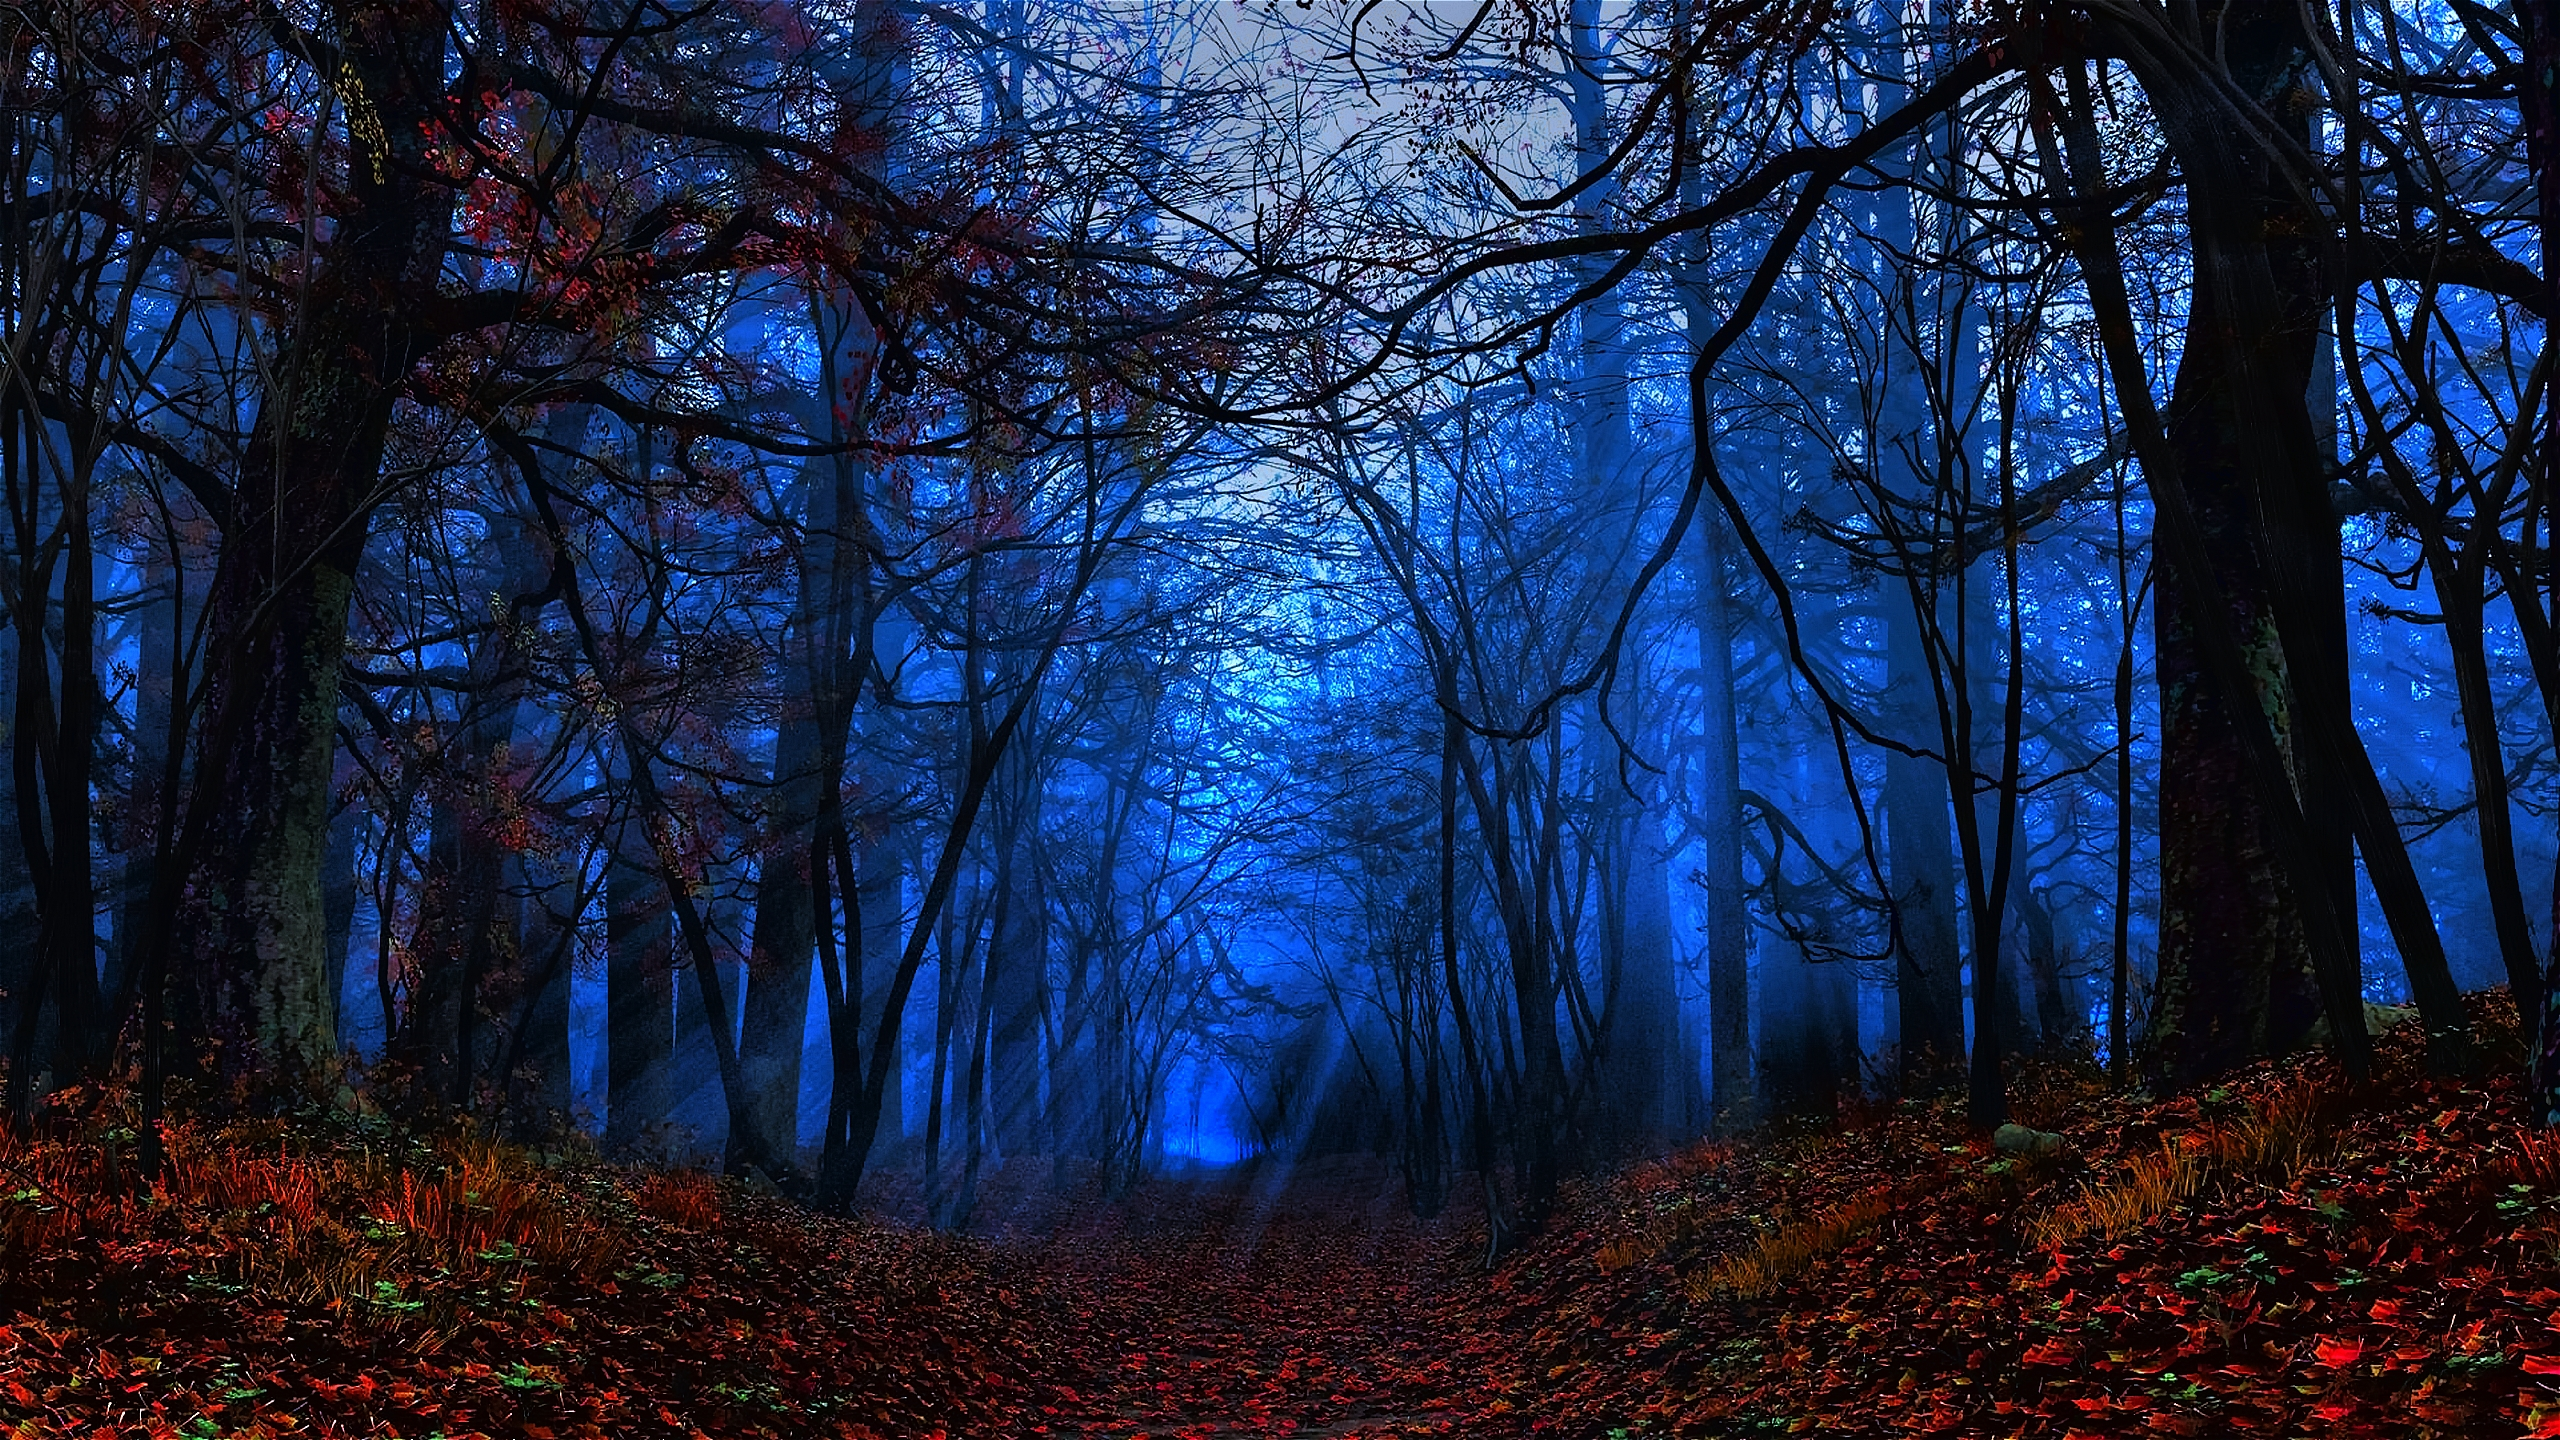 Mystical widescreen wallpapers wallpapersafari - Mystical background pictures ...